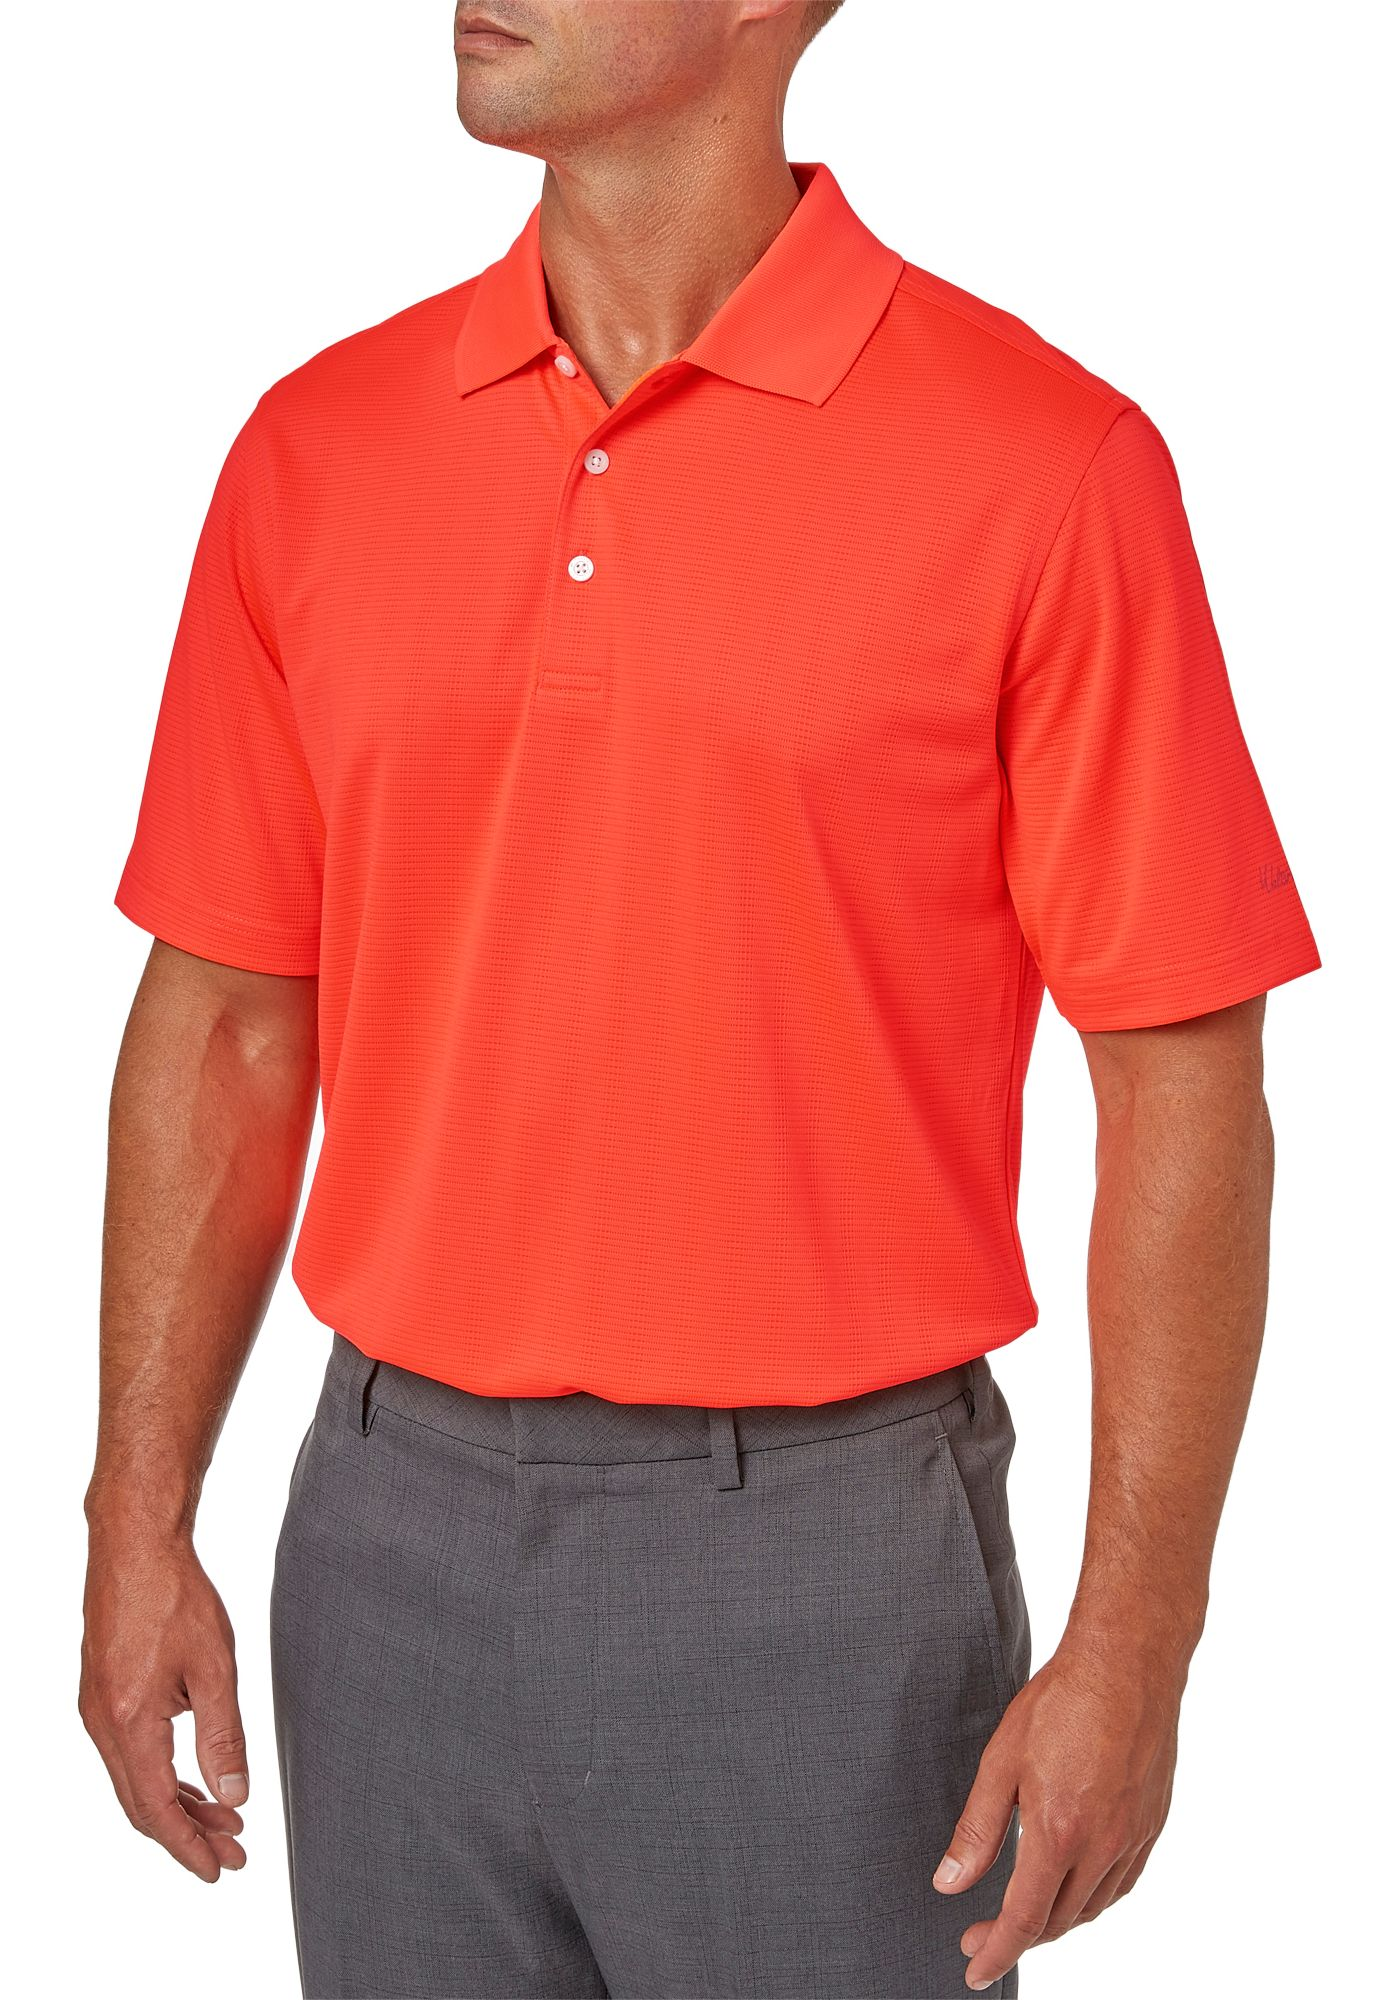 Walter Hagen Essentials Textured Solid Polo